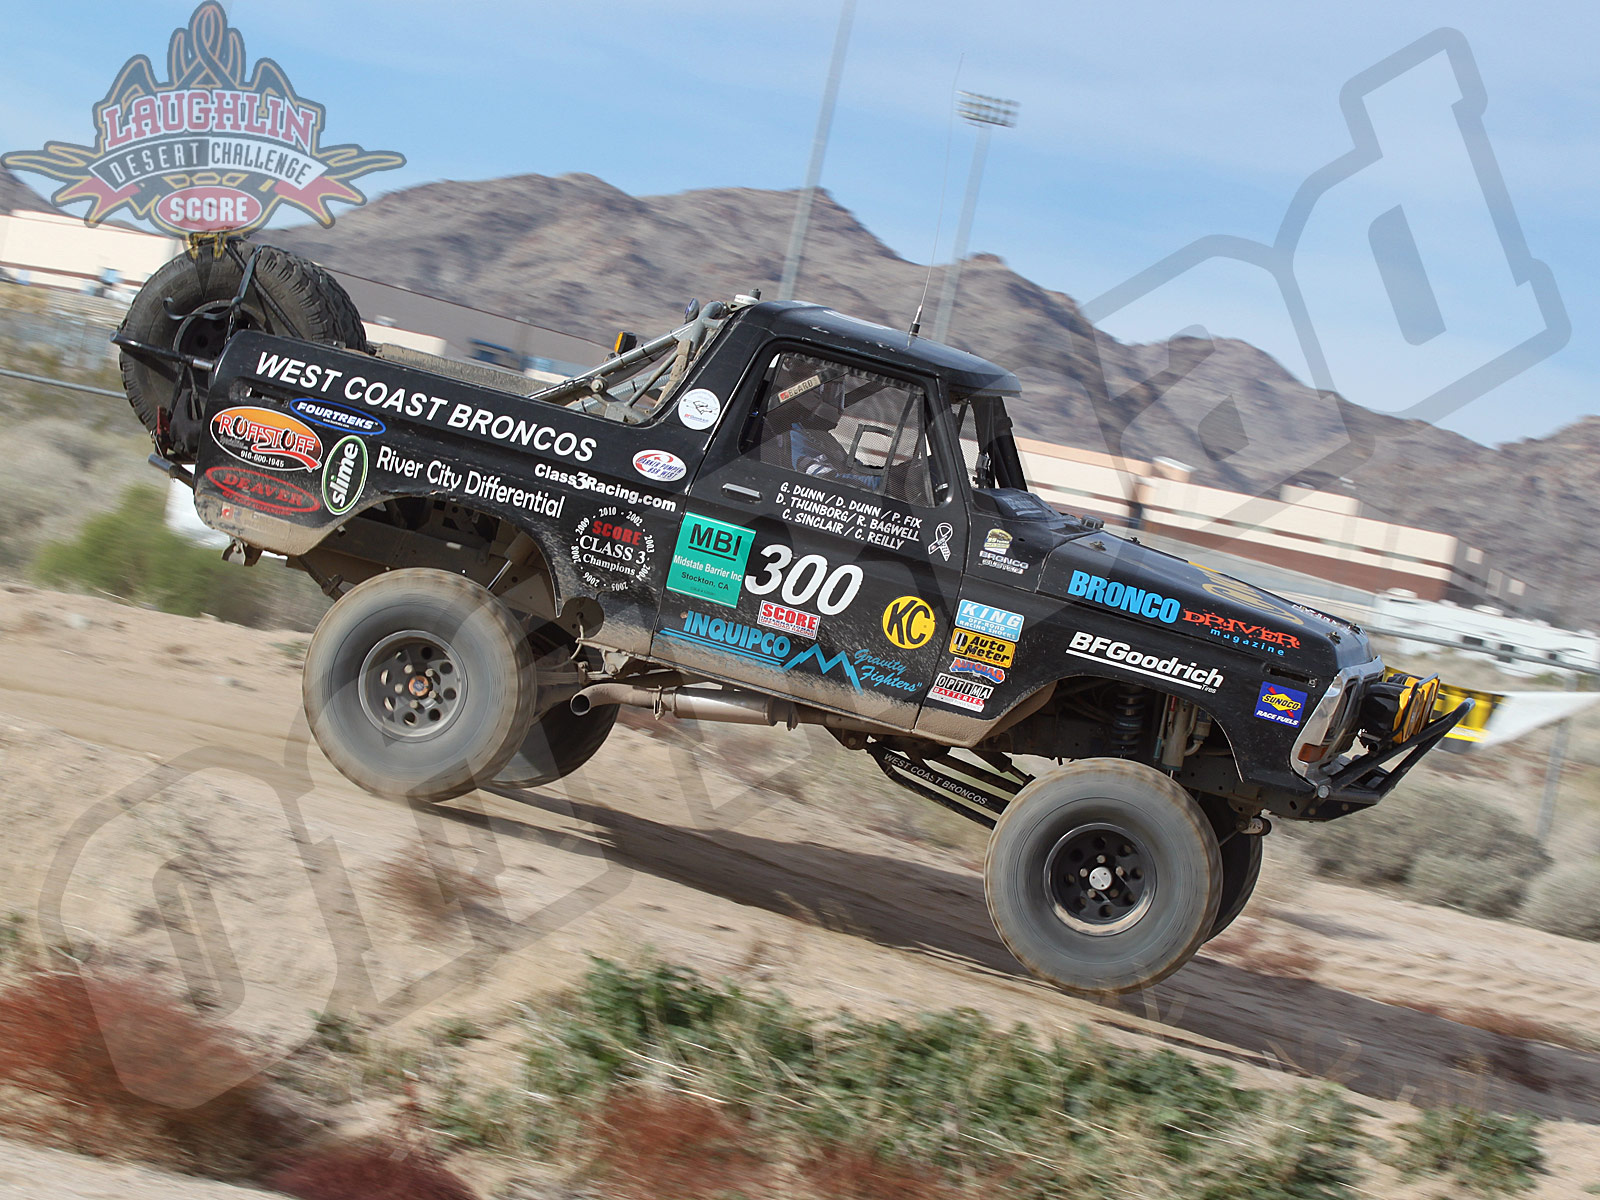 012011or 6622+2011 score laughlin desert challenge+truck classes